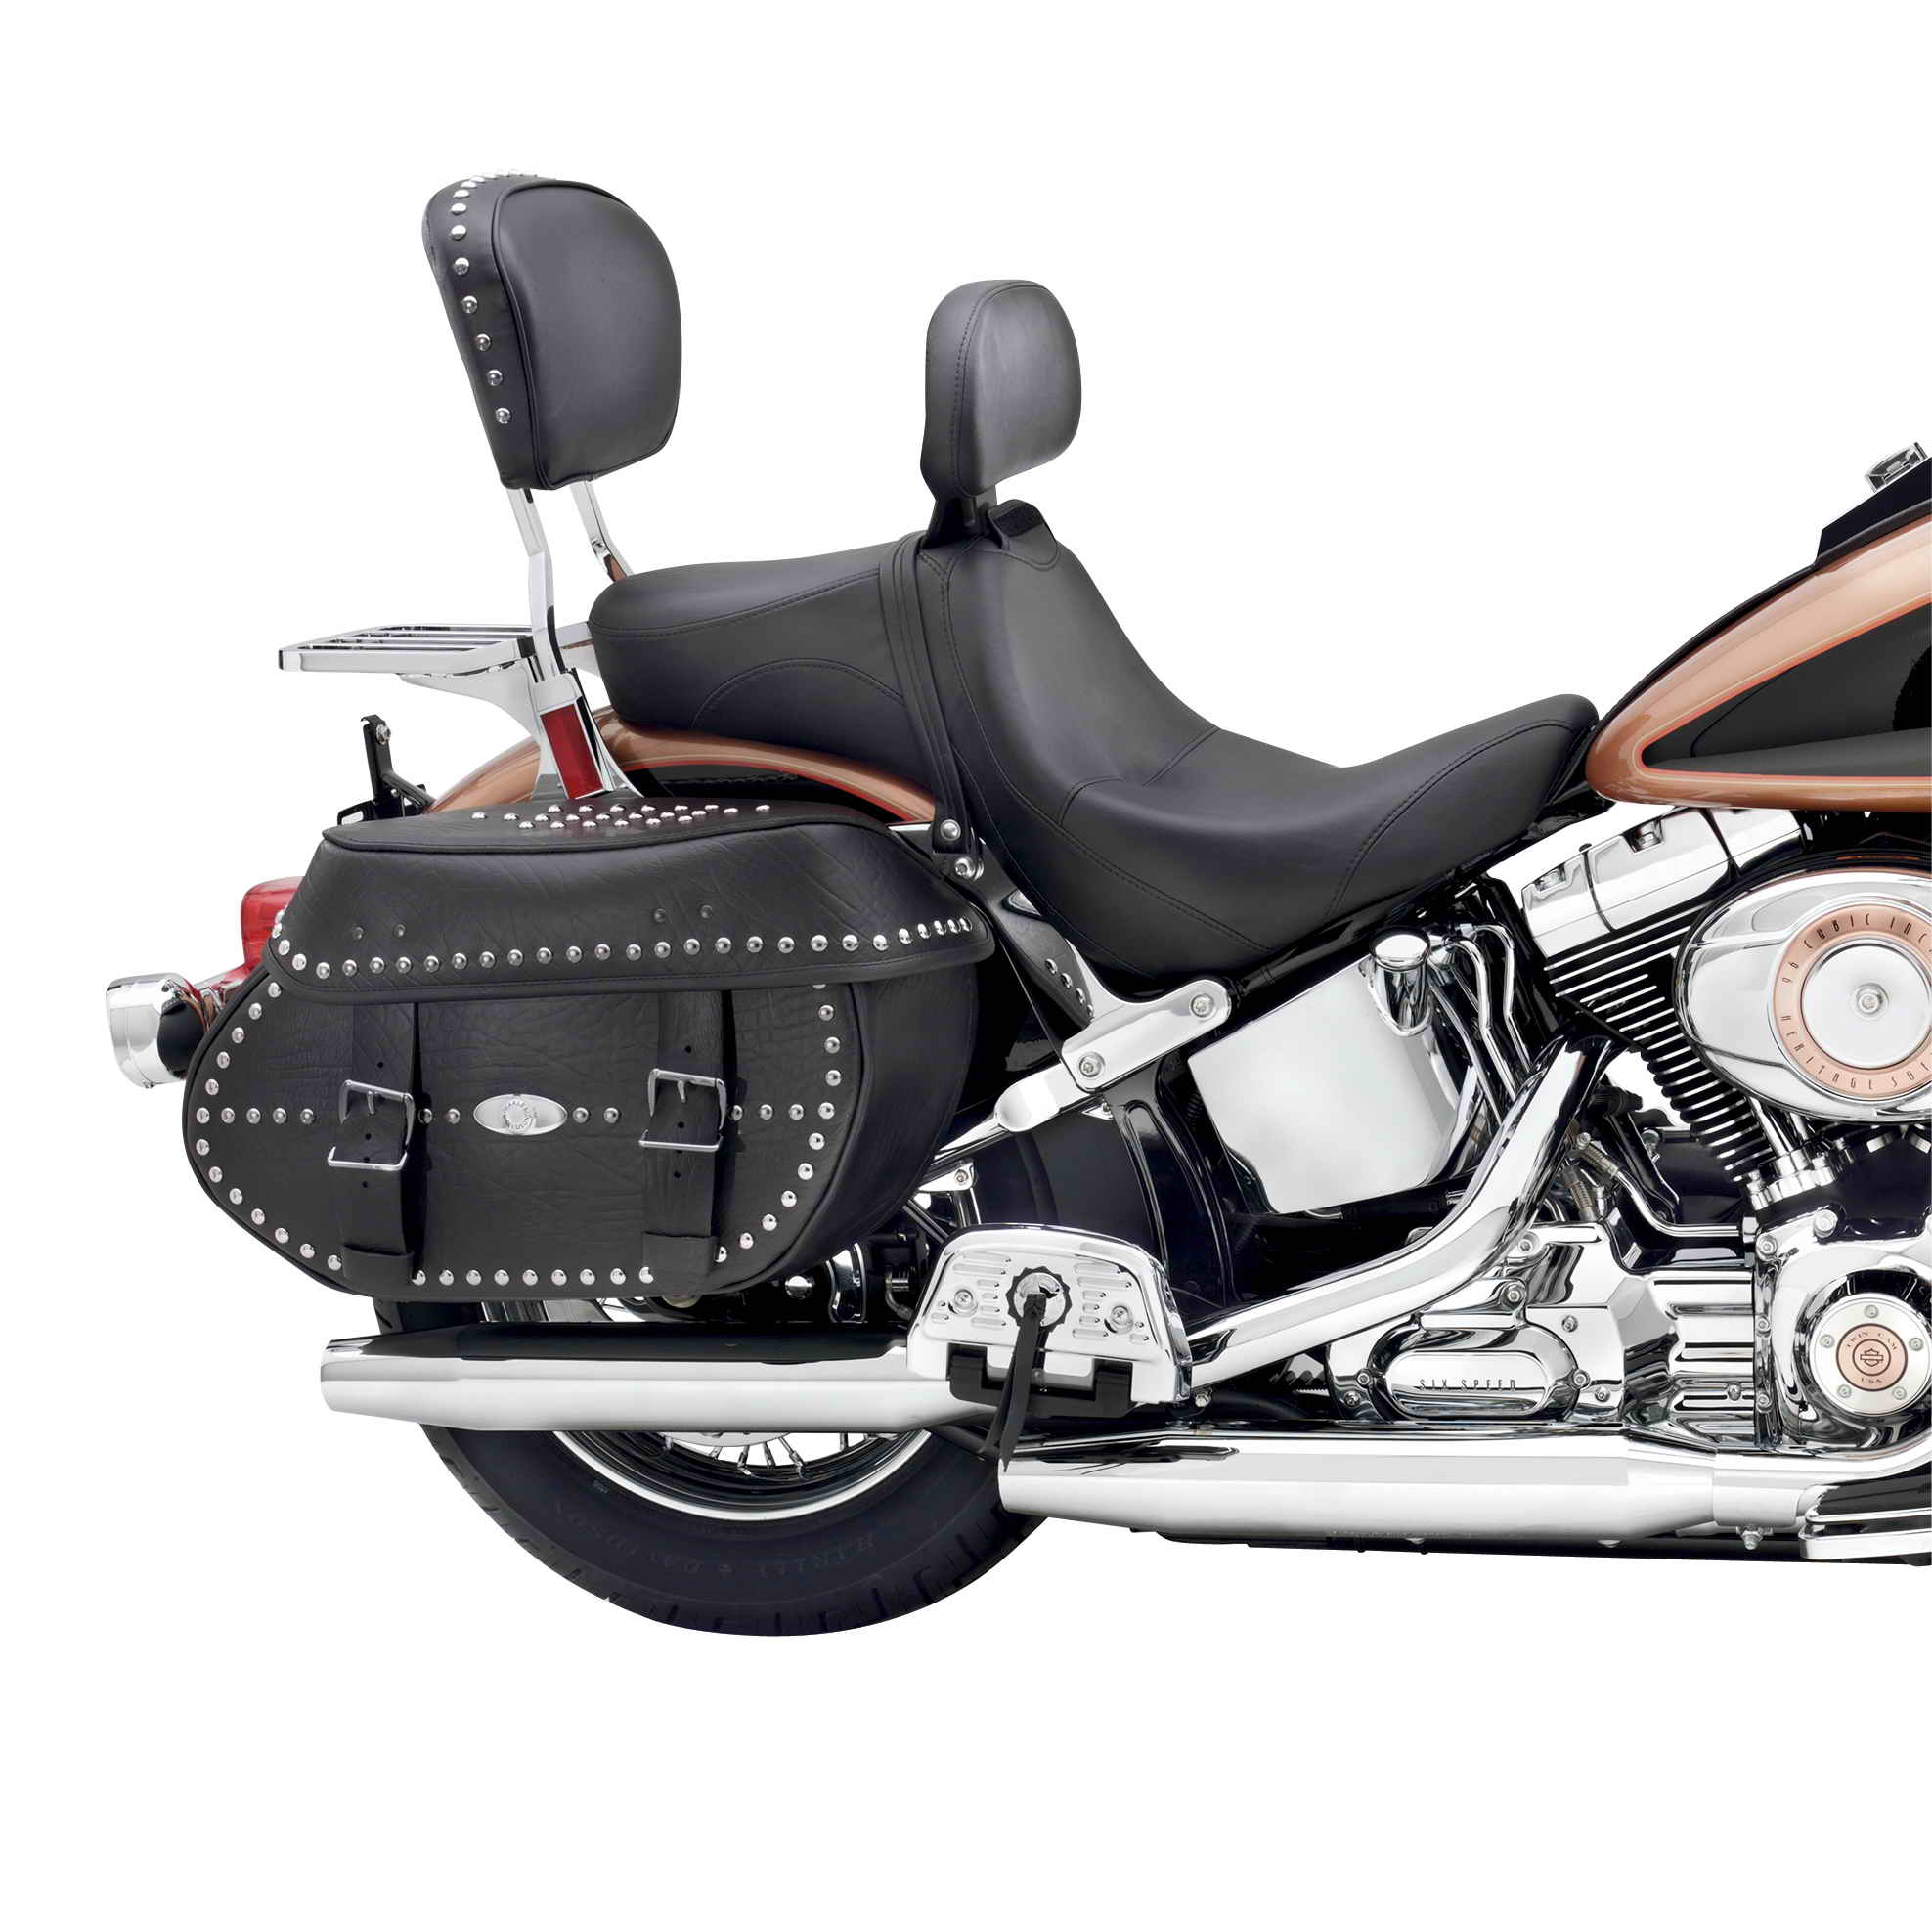 new signature series seat with rider backrest from harley davidson top speed. Black Bedroom Furniture Sets. Home Design Ideas